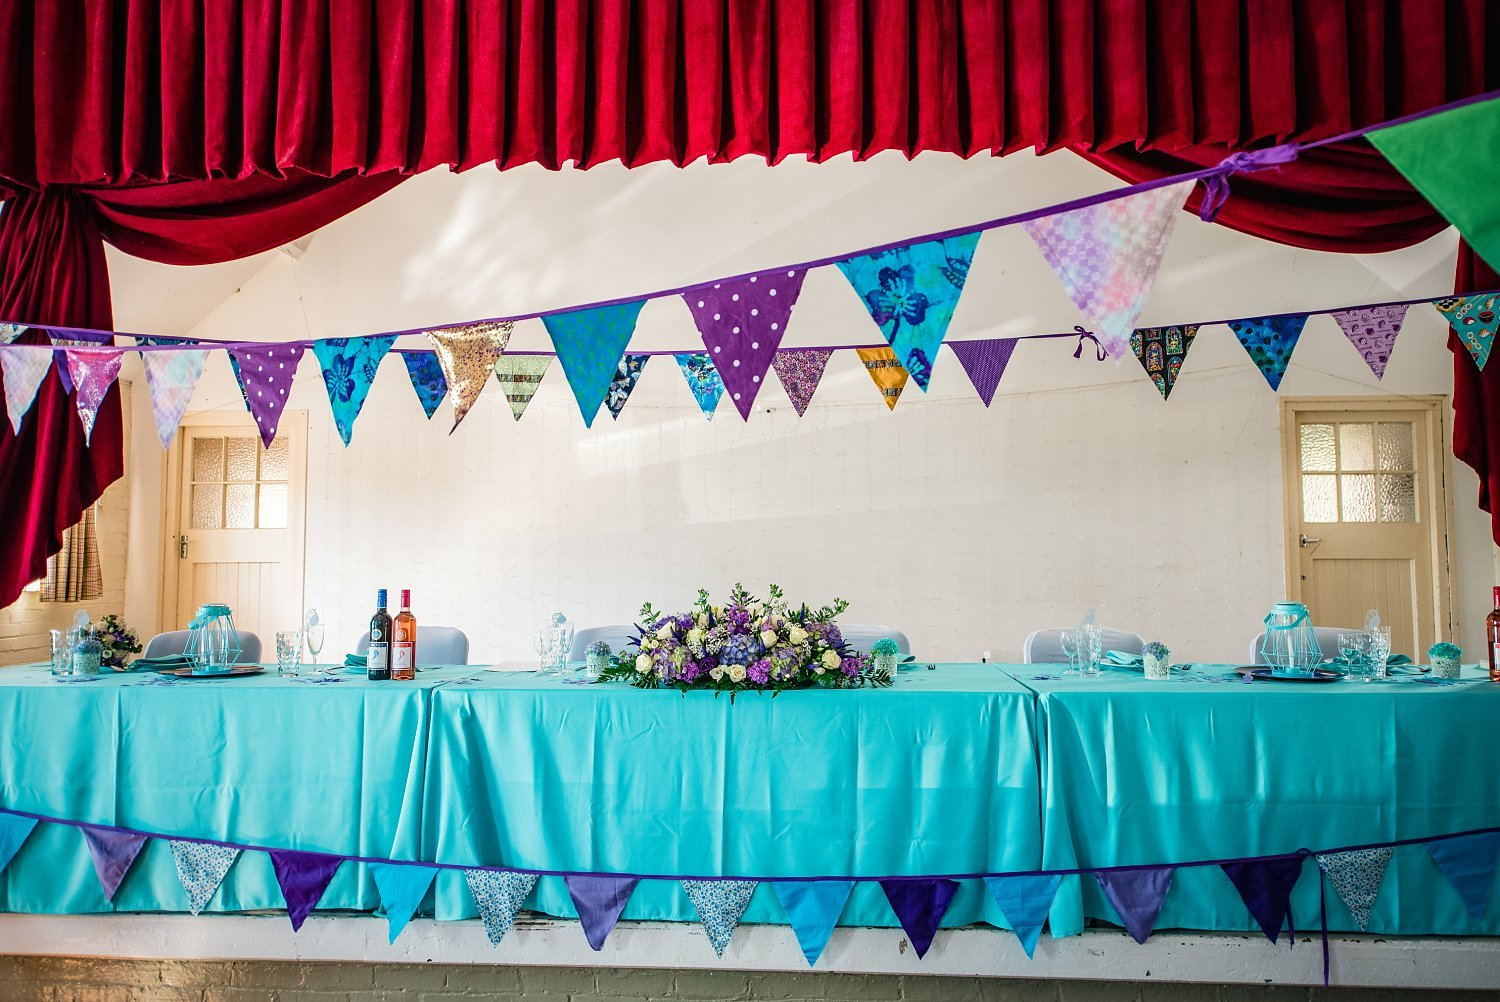 inside the Rogate Village Hall - Petersfield Wedding Photographer